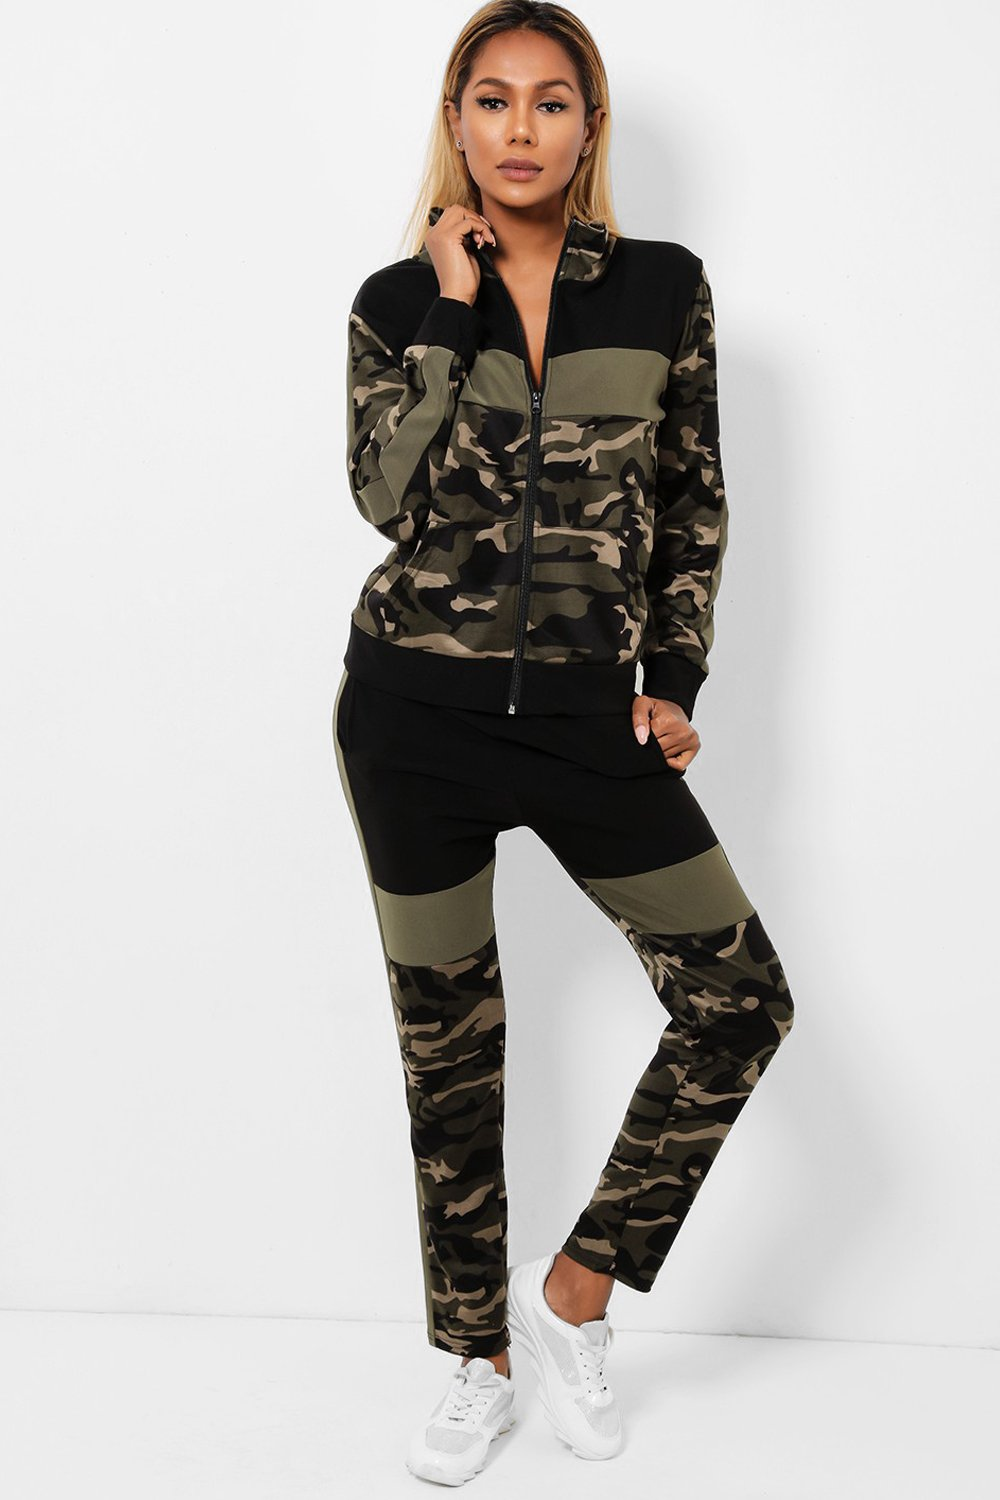 Green Camouflage Print Two Piece Tracksuit